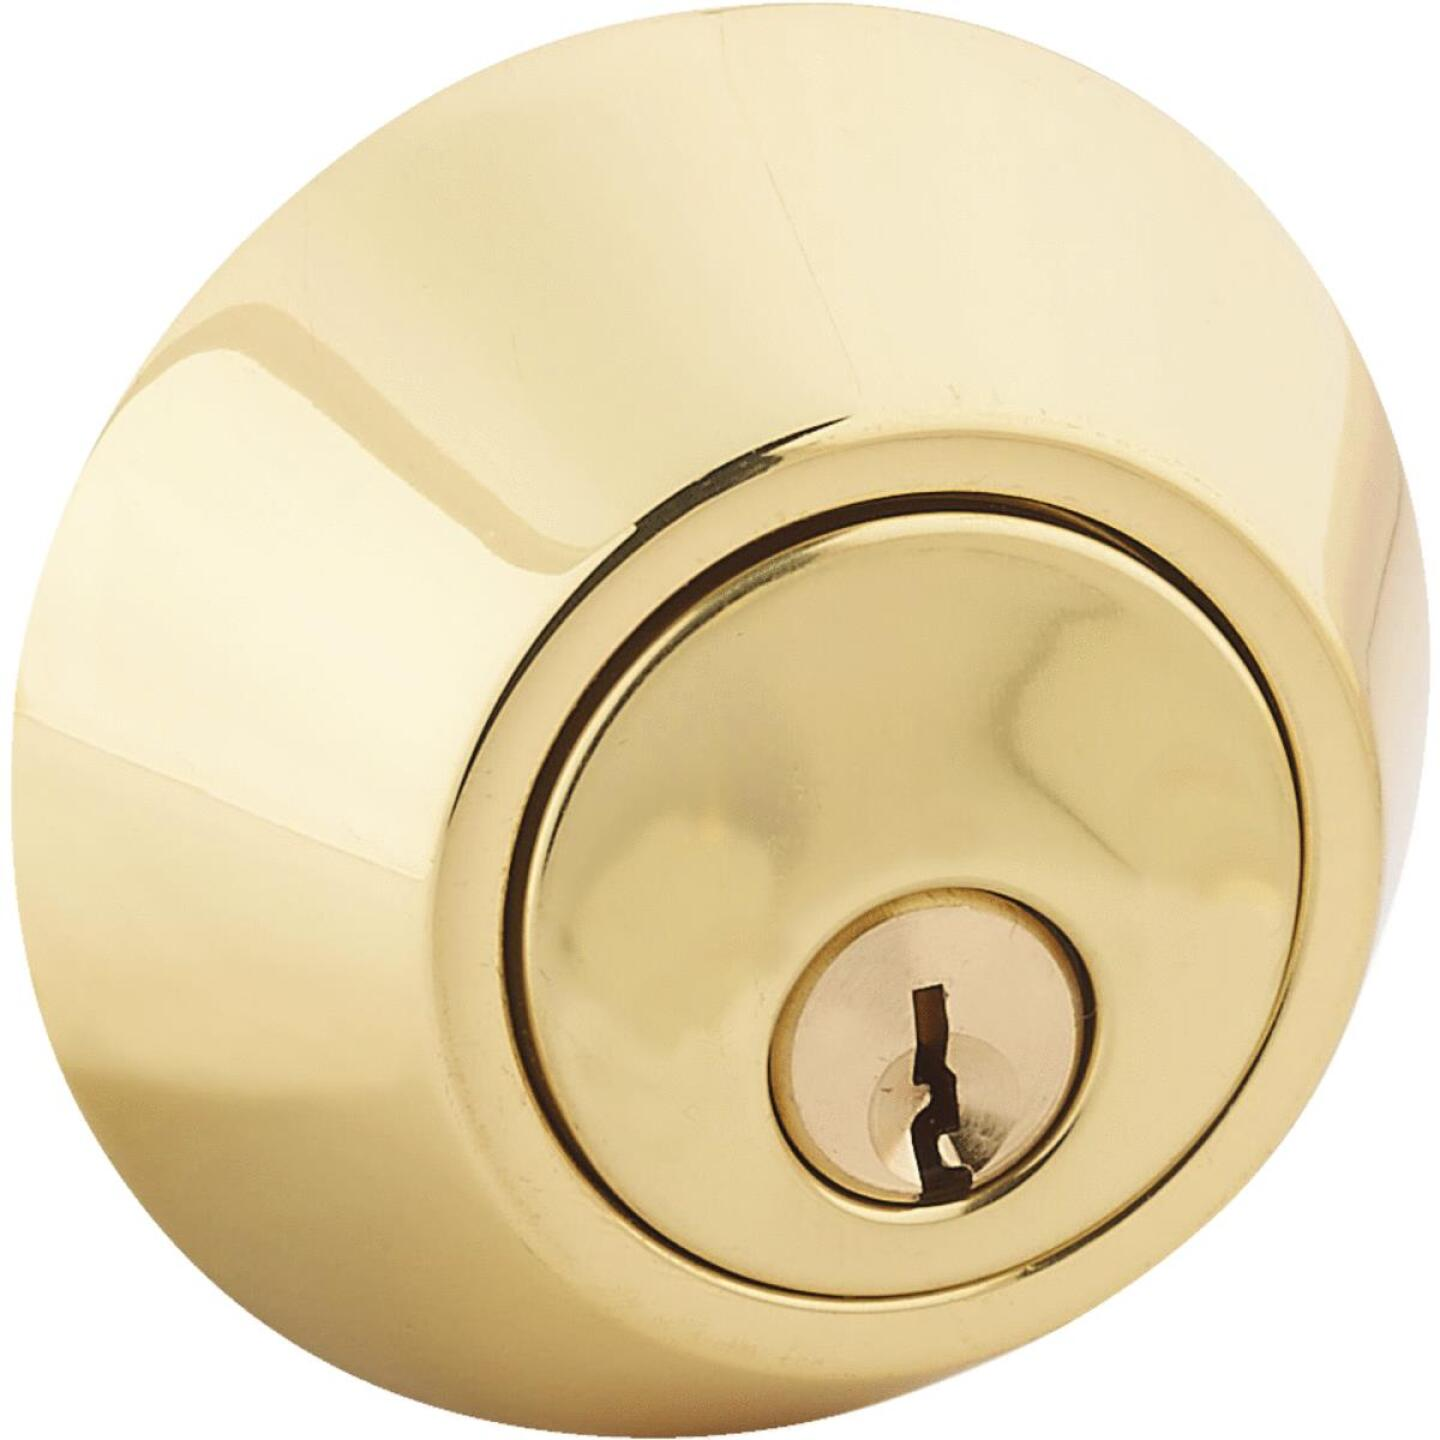 Steel Pro Polished Brass Kwikset Double Cylinder Deadbolt Image 1